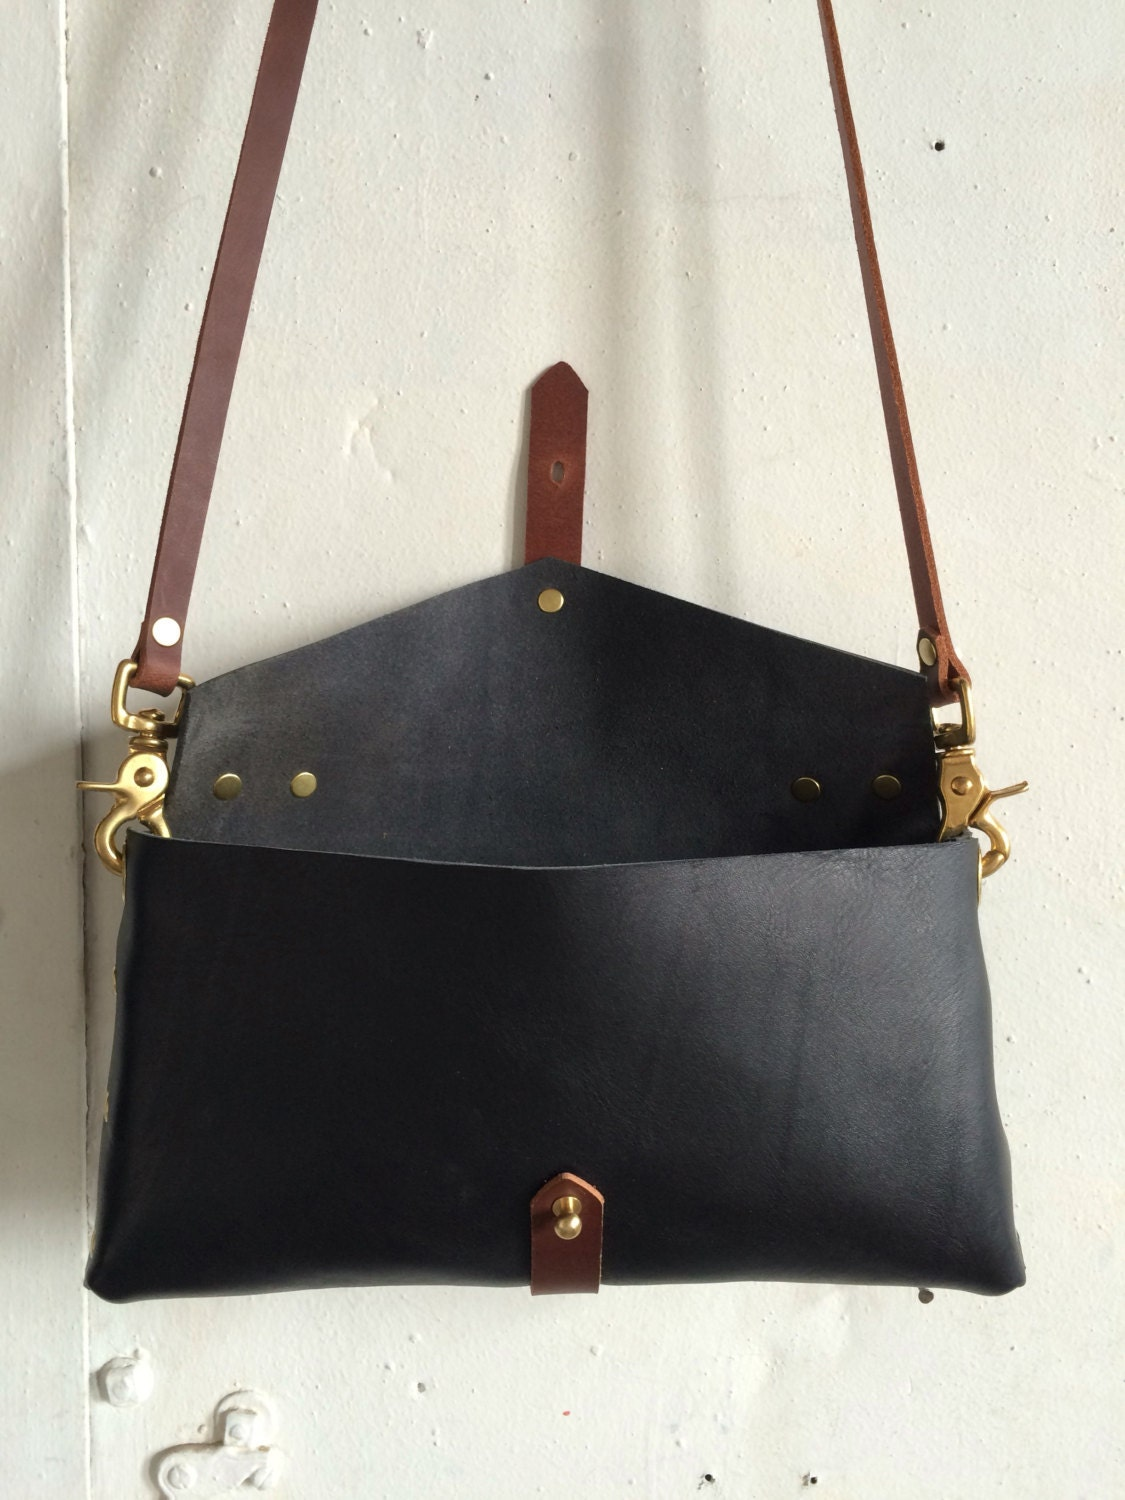 Envelope clutch in black and cherry